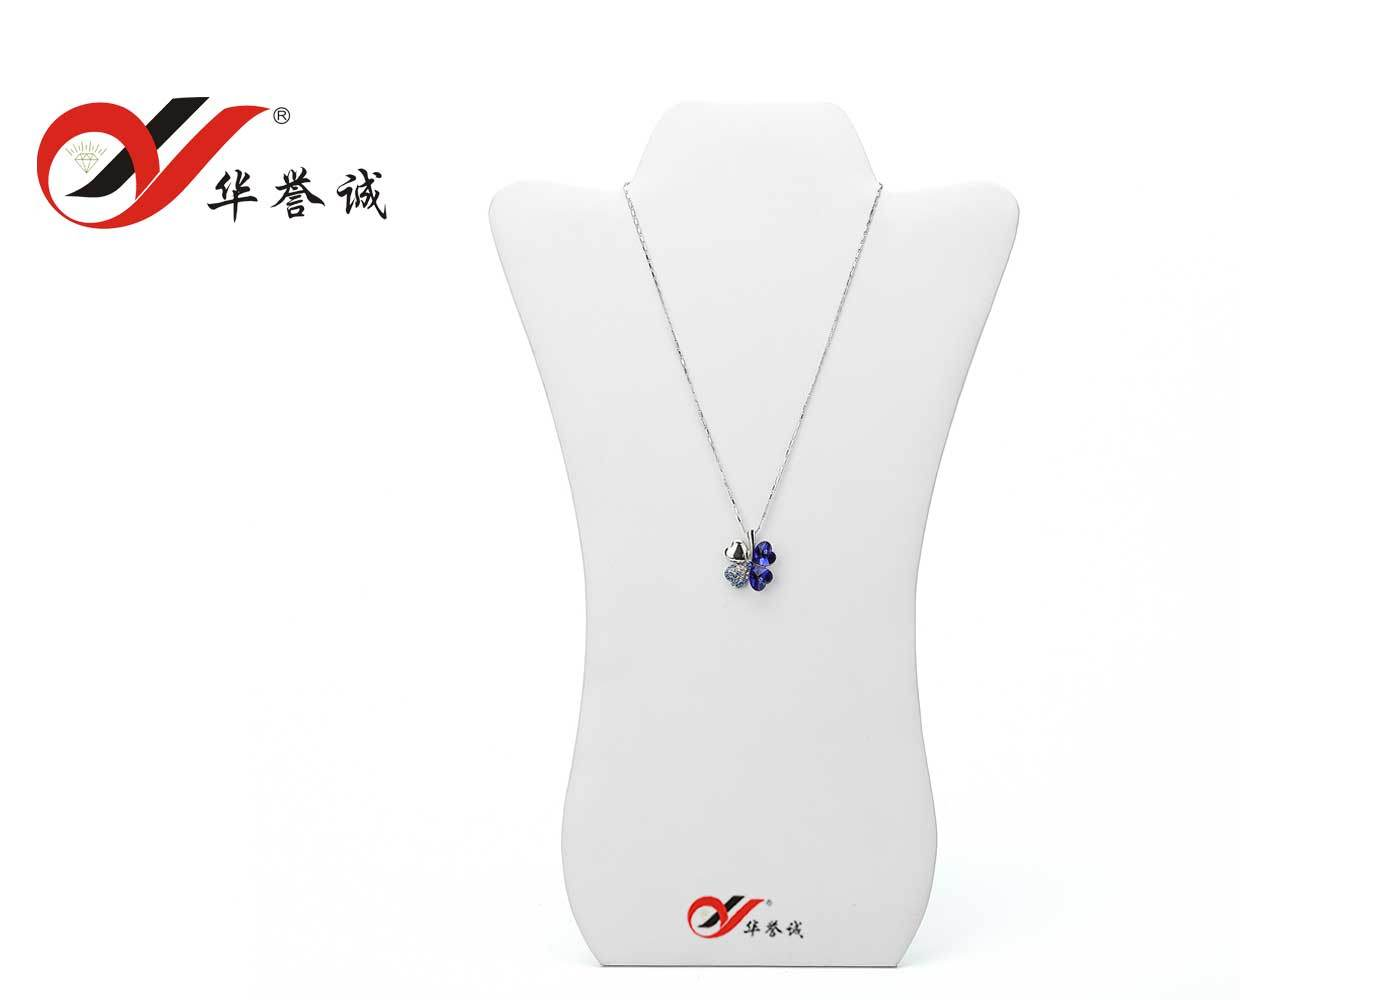 Velvet Jewelry Necklace Display Stand for Pendant Display